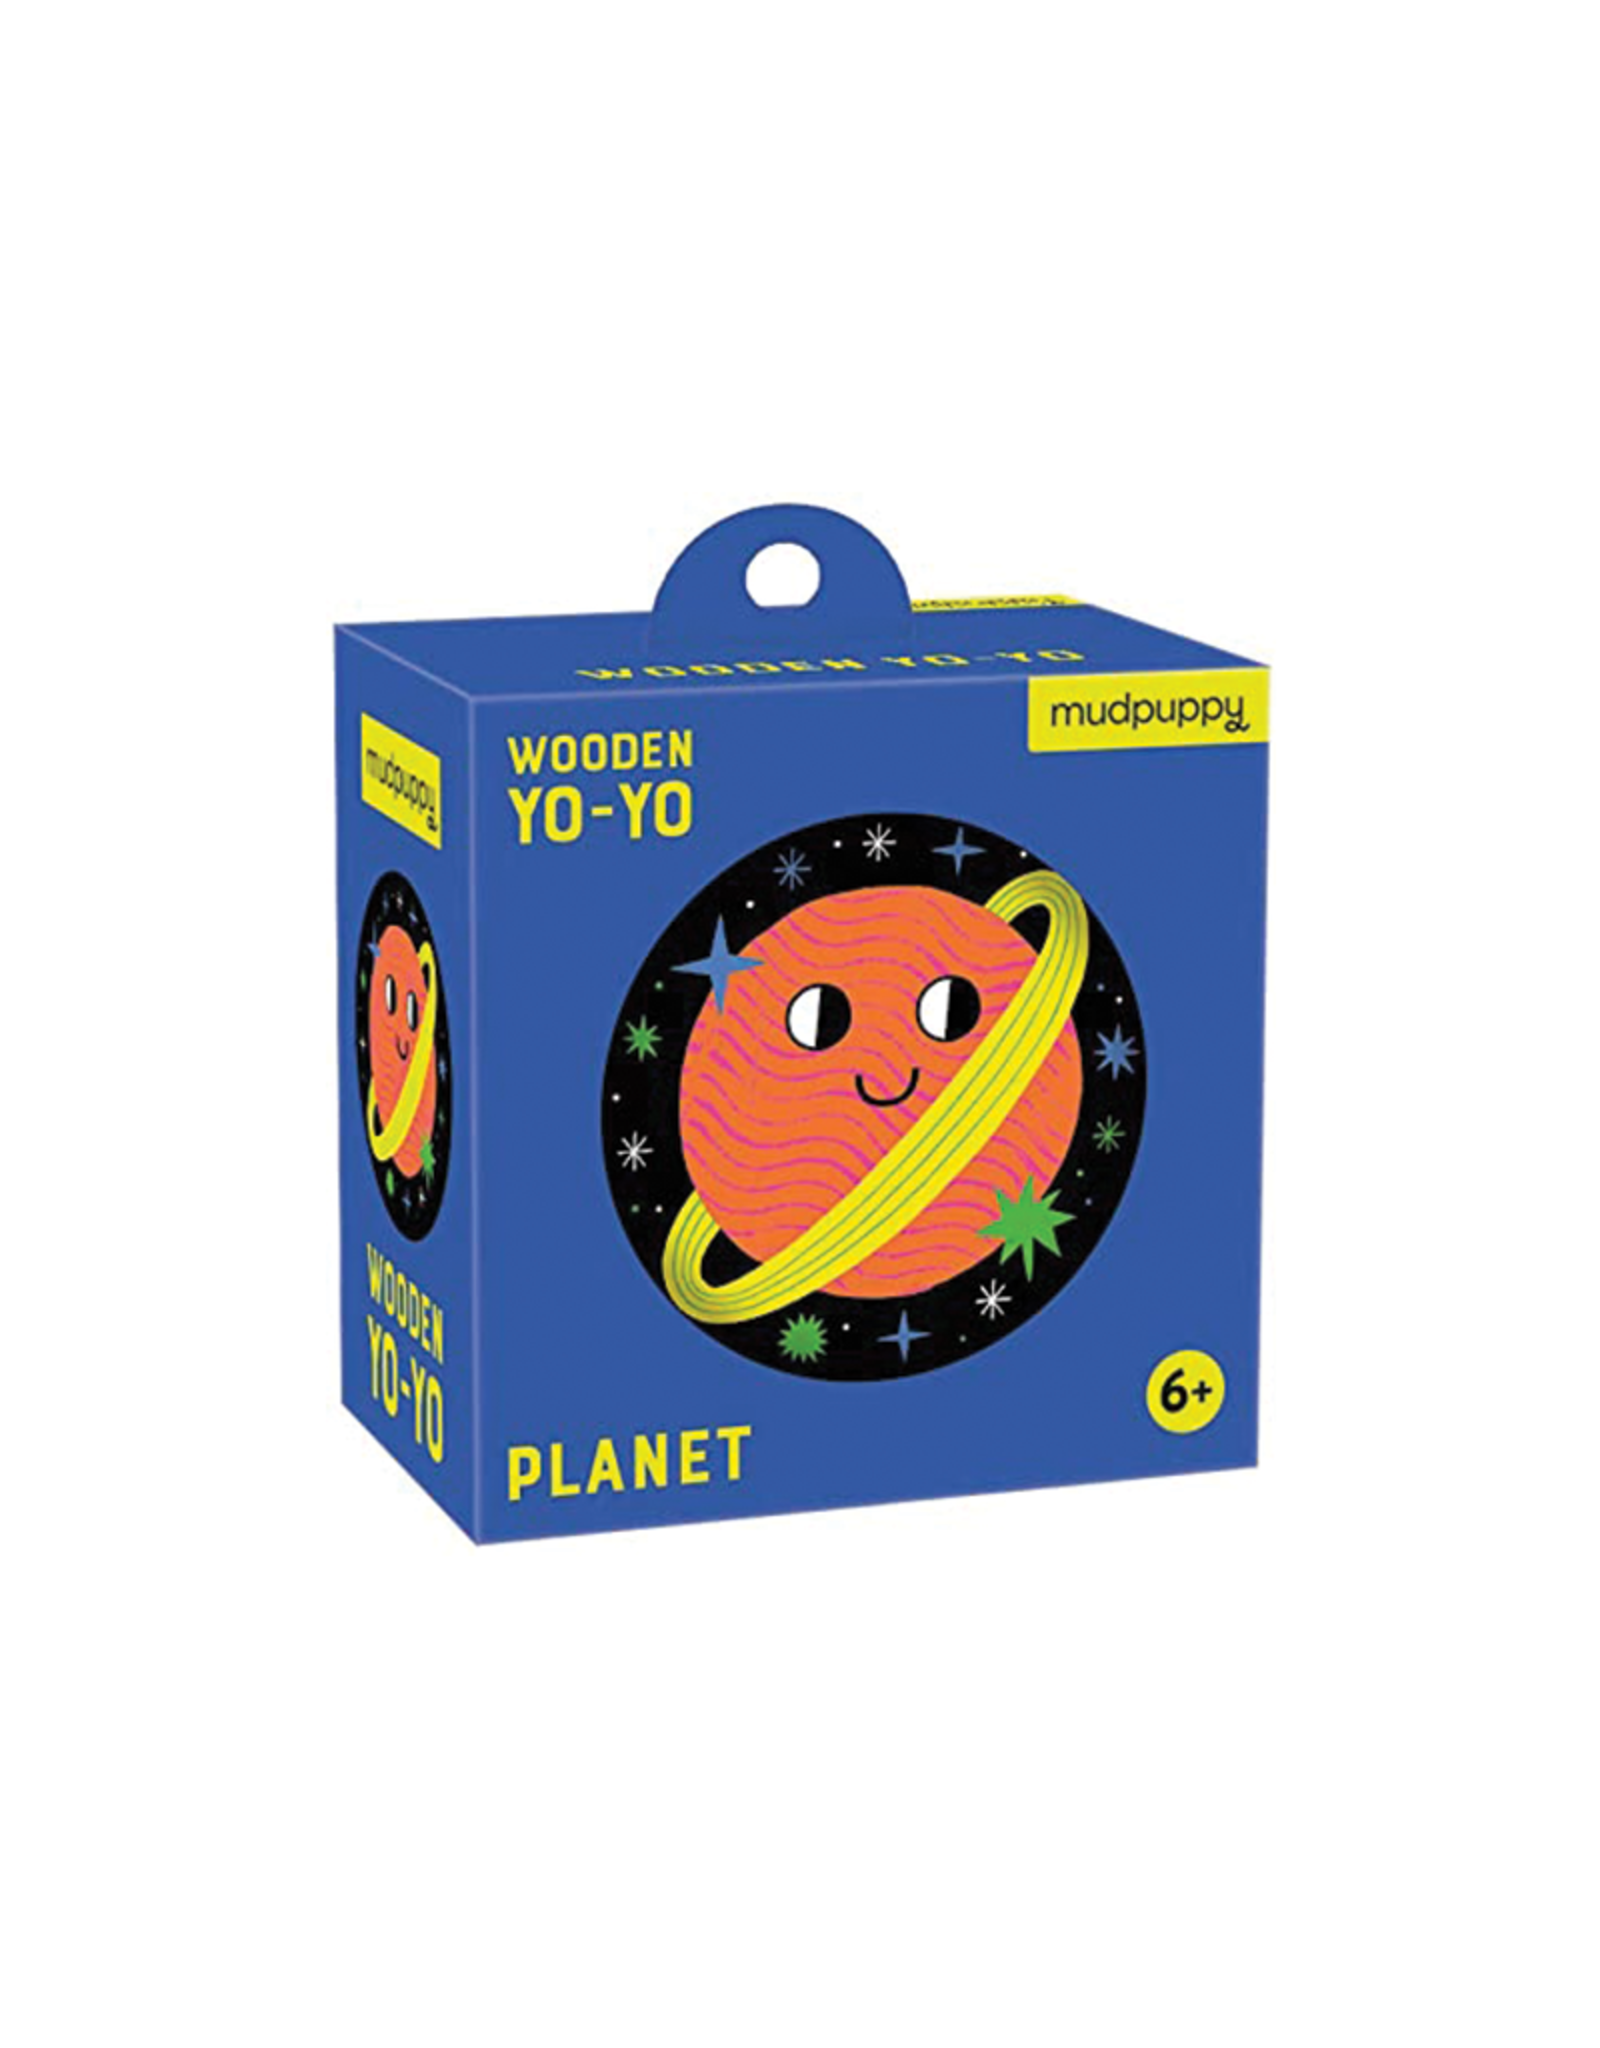 Mudpuppy Space Planet Wooden Yo-Yo